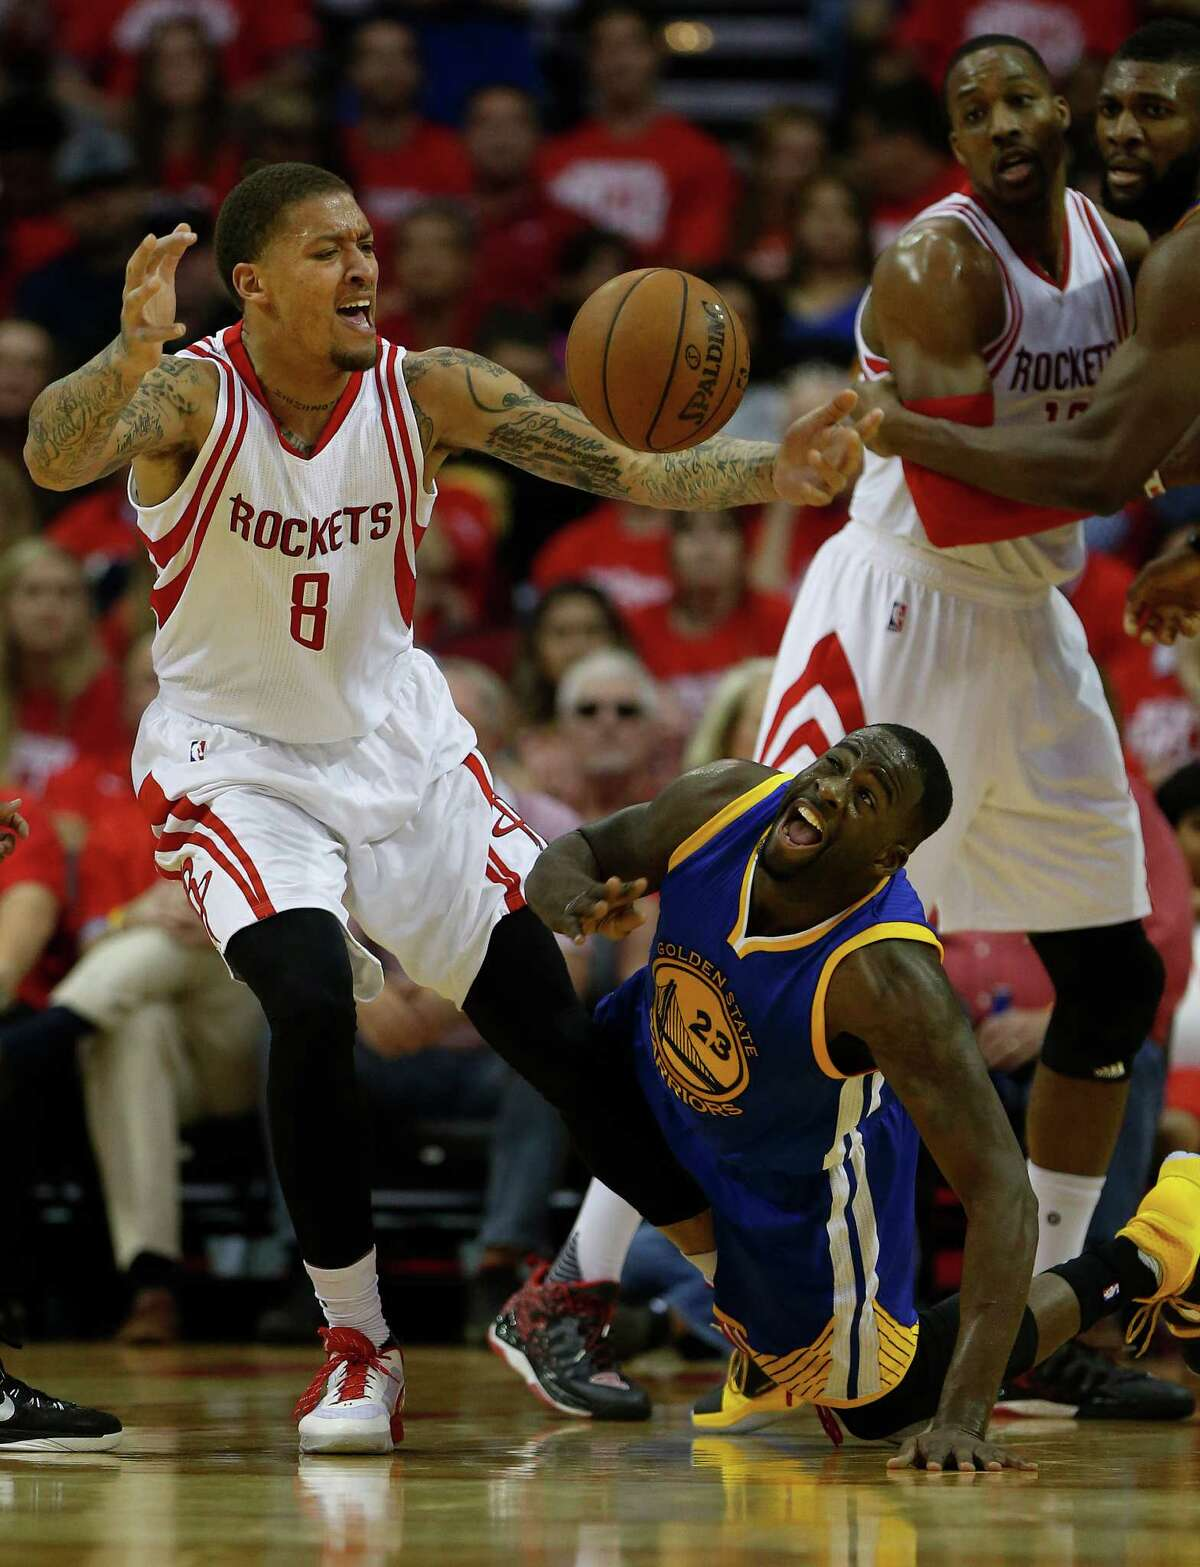 Houston Rockets forward Michael Beasley (8) battles for a loose ball with Golden State Warriors forward Draymond Green (23) during the second half of game four of the first round of the NBA playoff series at Toyota Center, Sunday, April 24, 2016, in Houston.